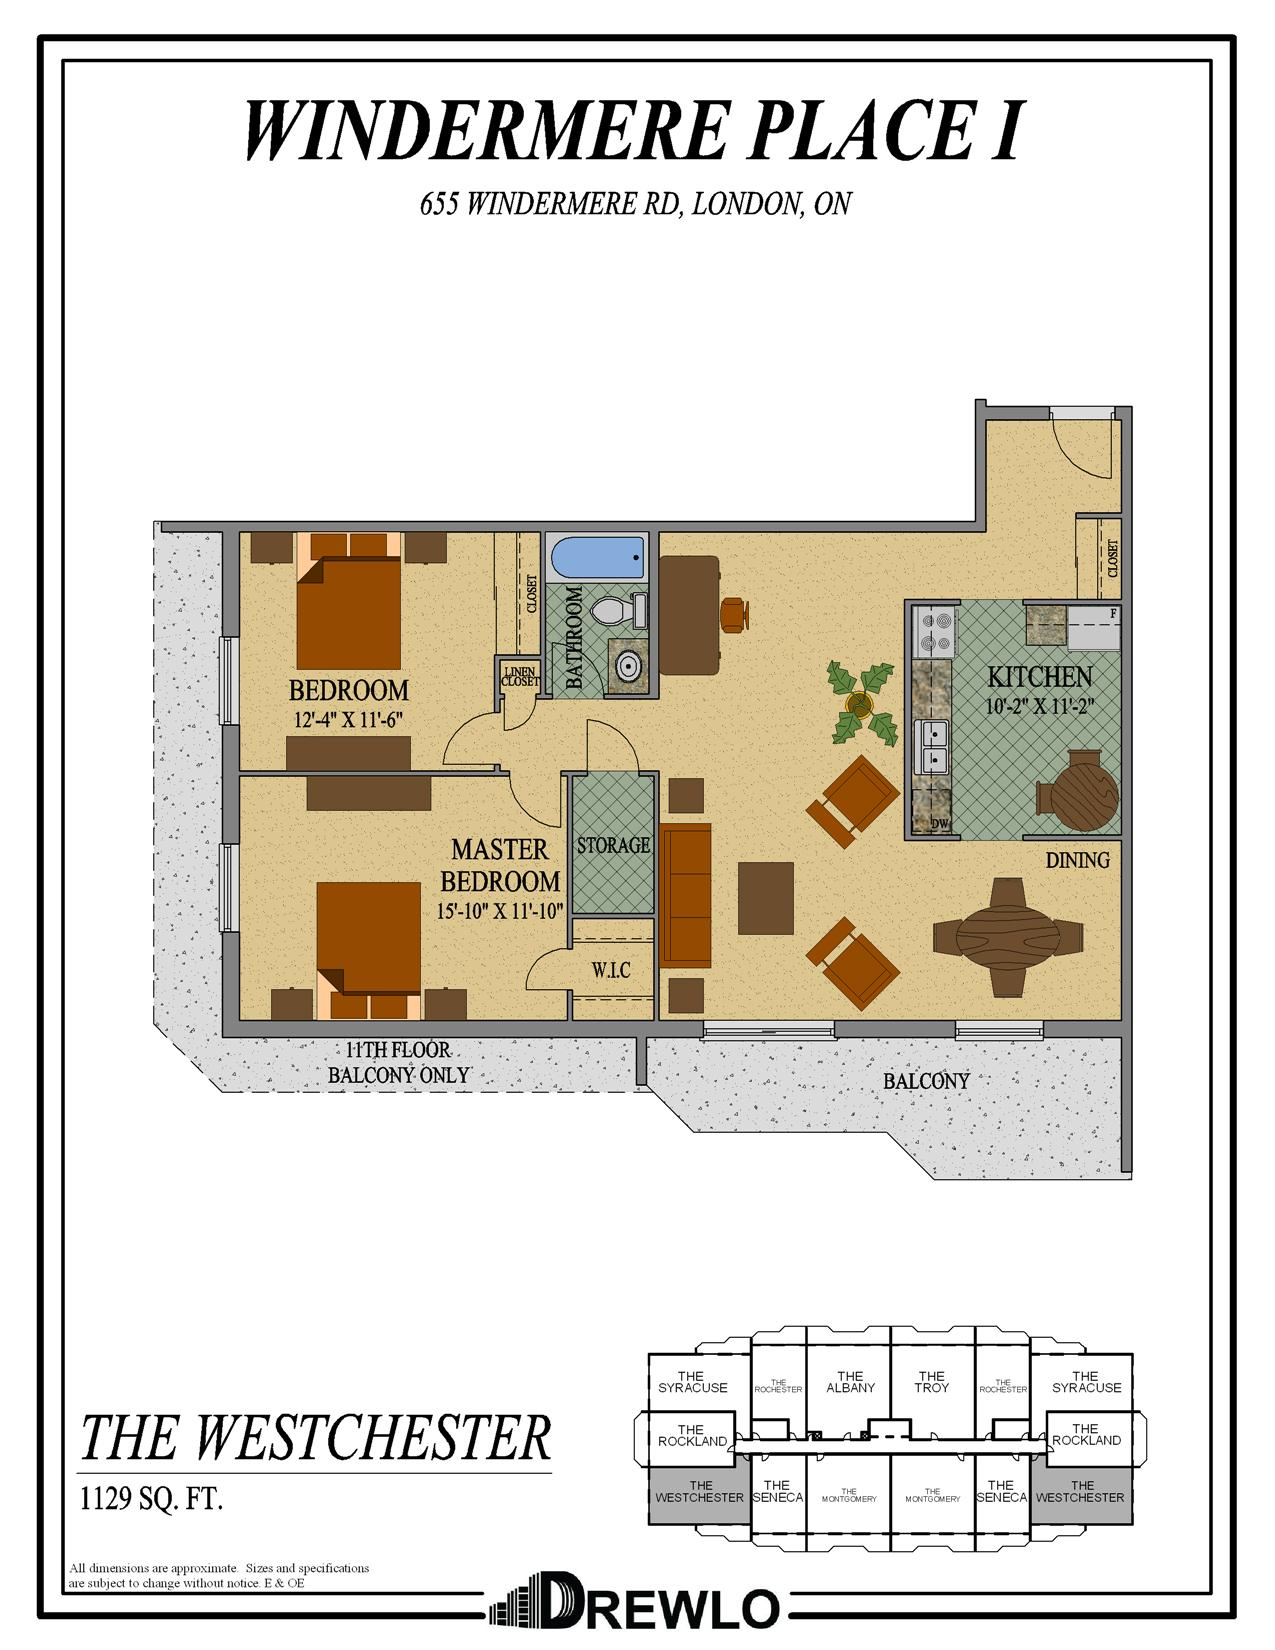 Windermere place drewlo holdings for 1120 westchester place floor plan